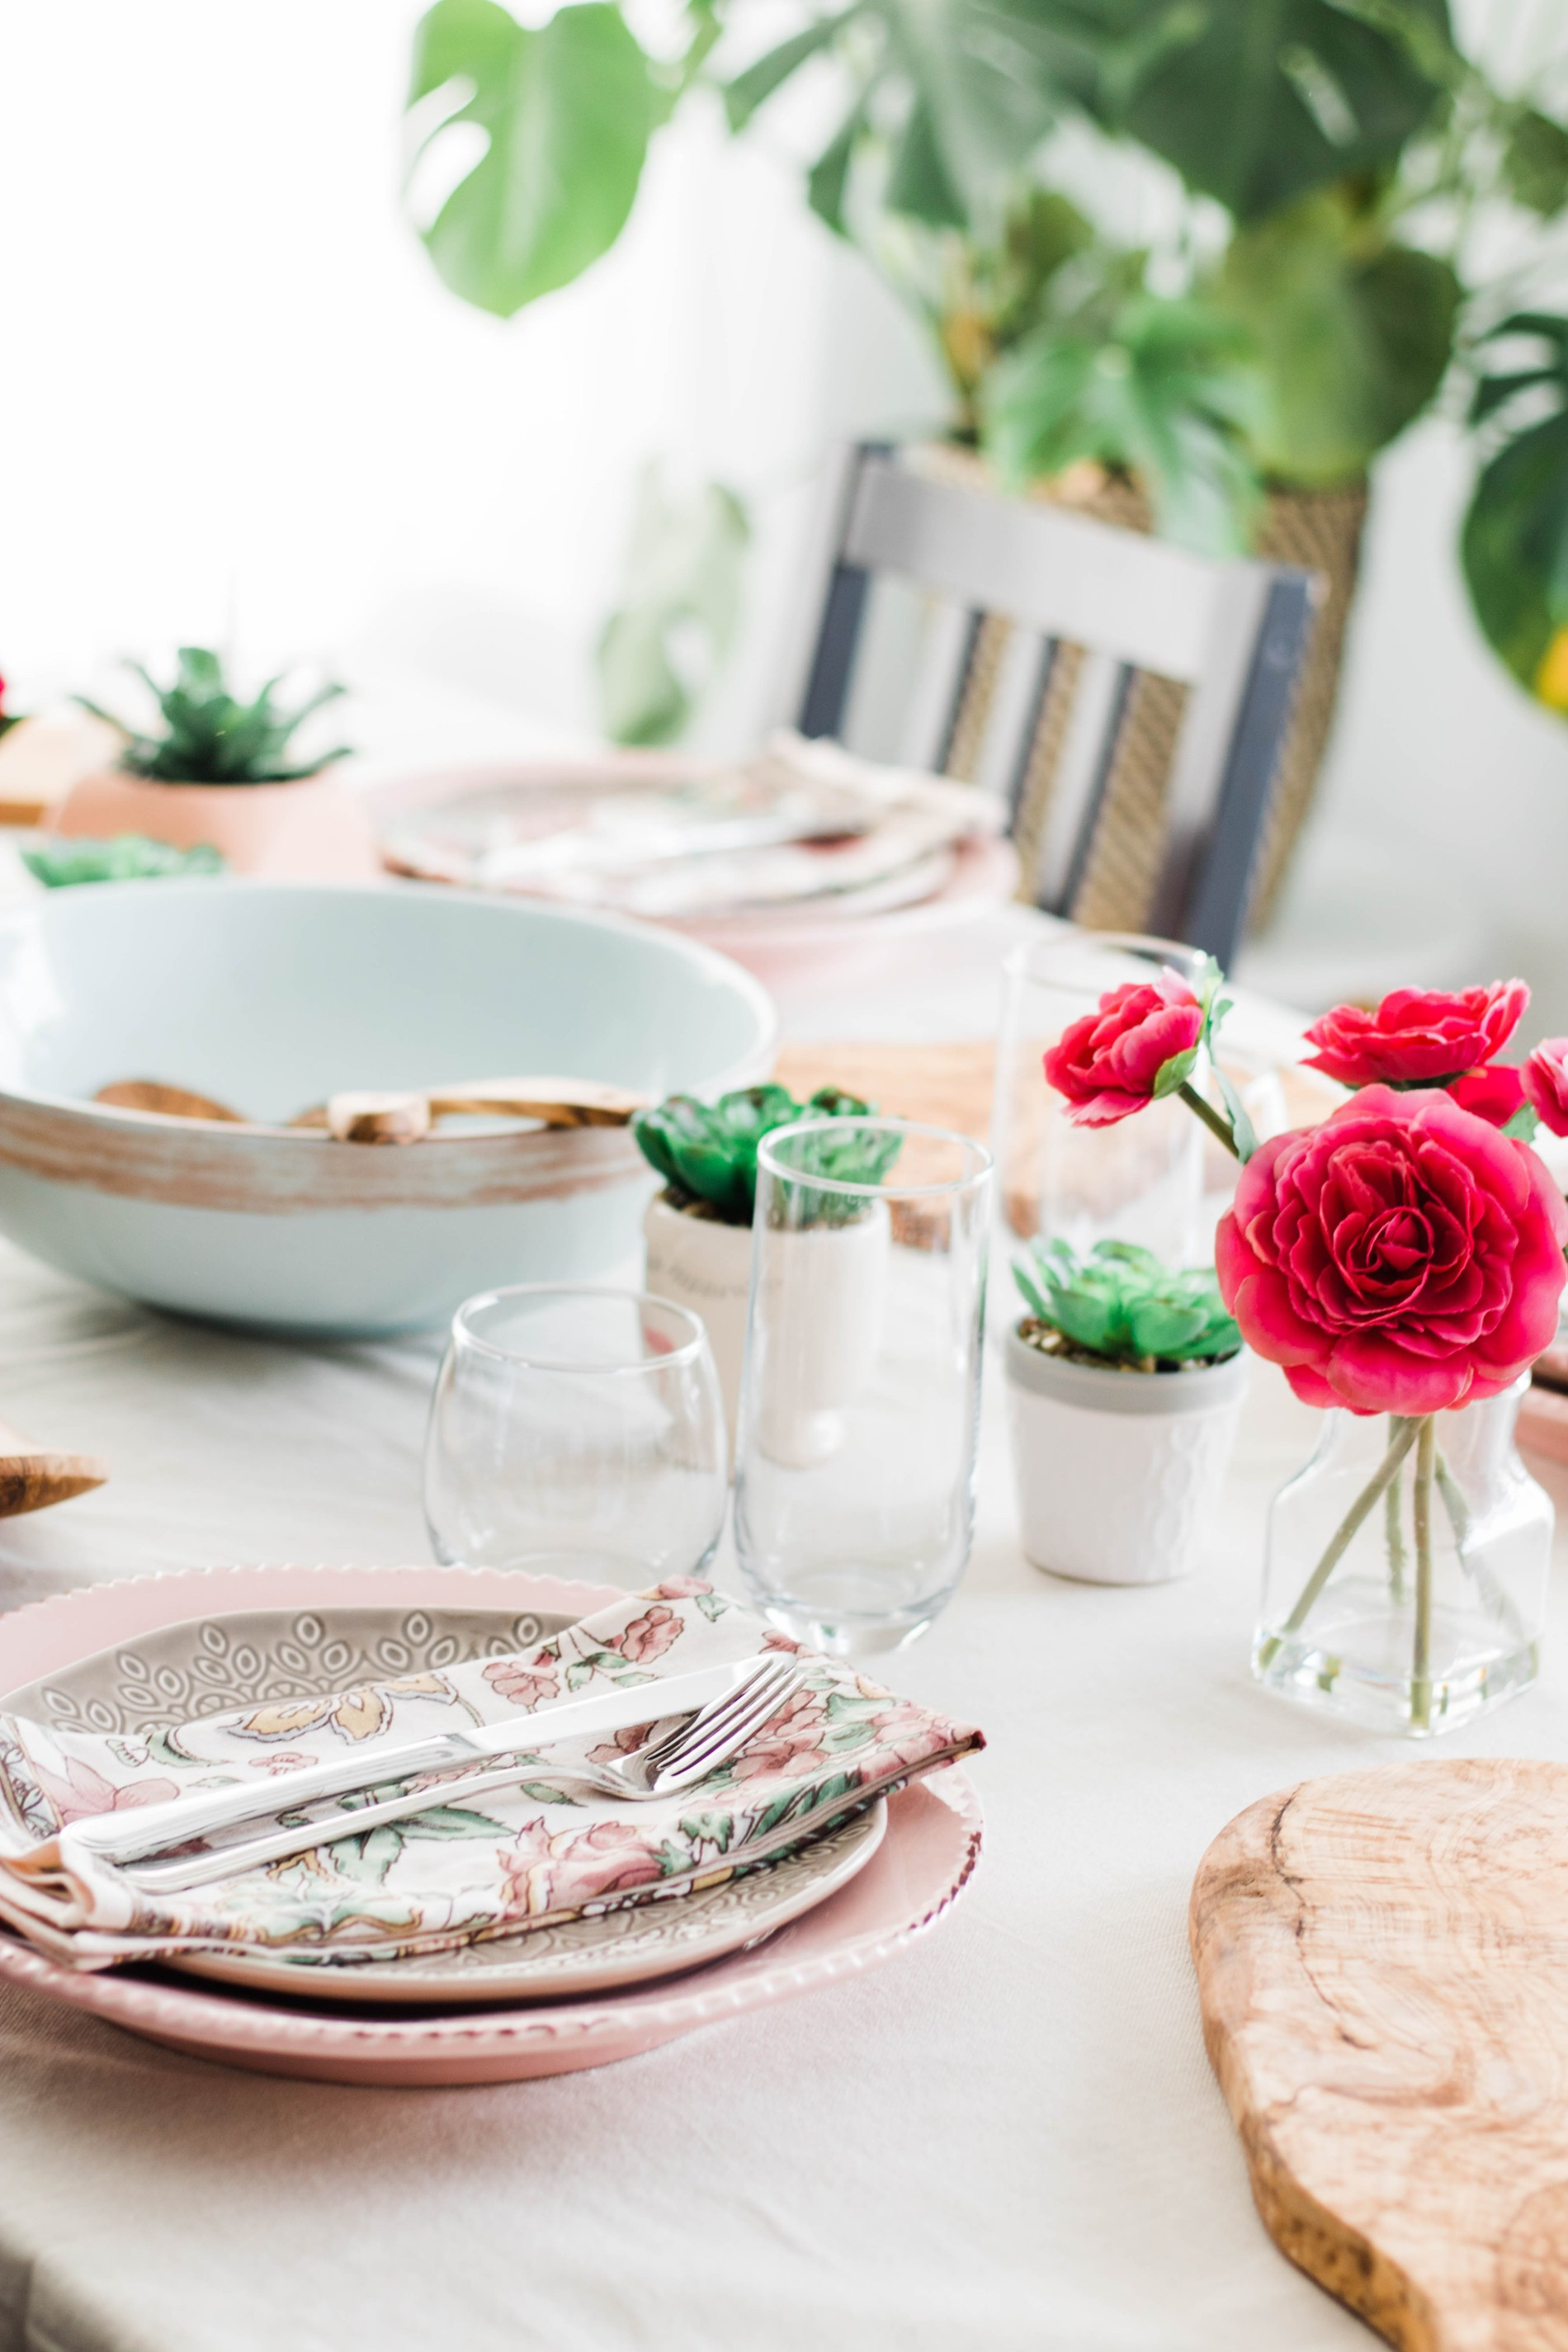 A Dinner Party To Celebrate Spring's Arrival. #tablescape #dinnerparty #spring #dinner